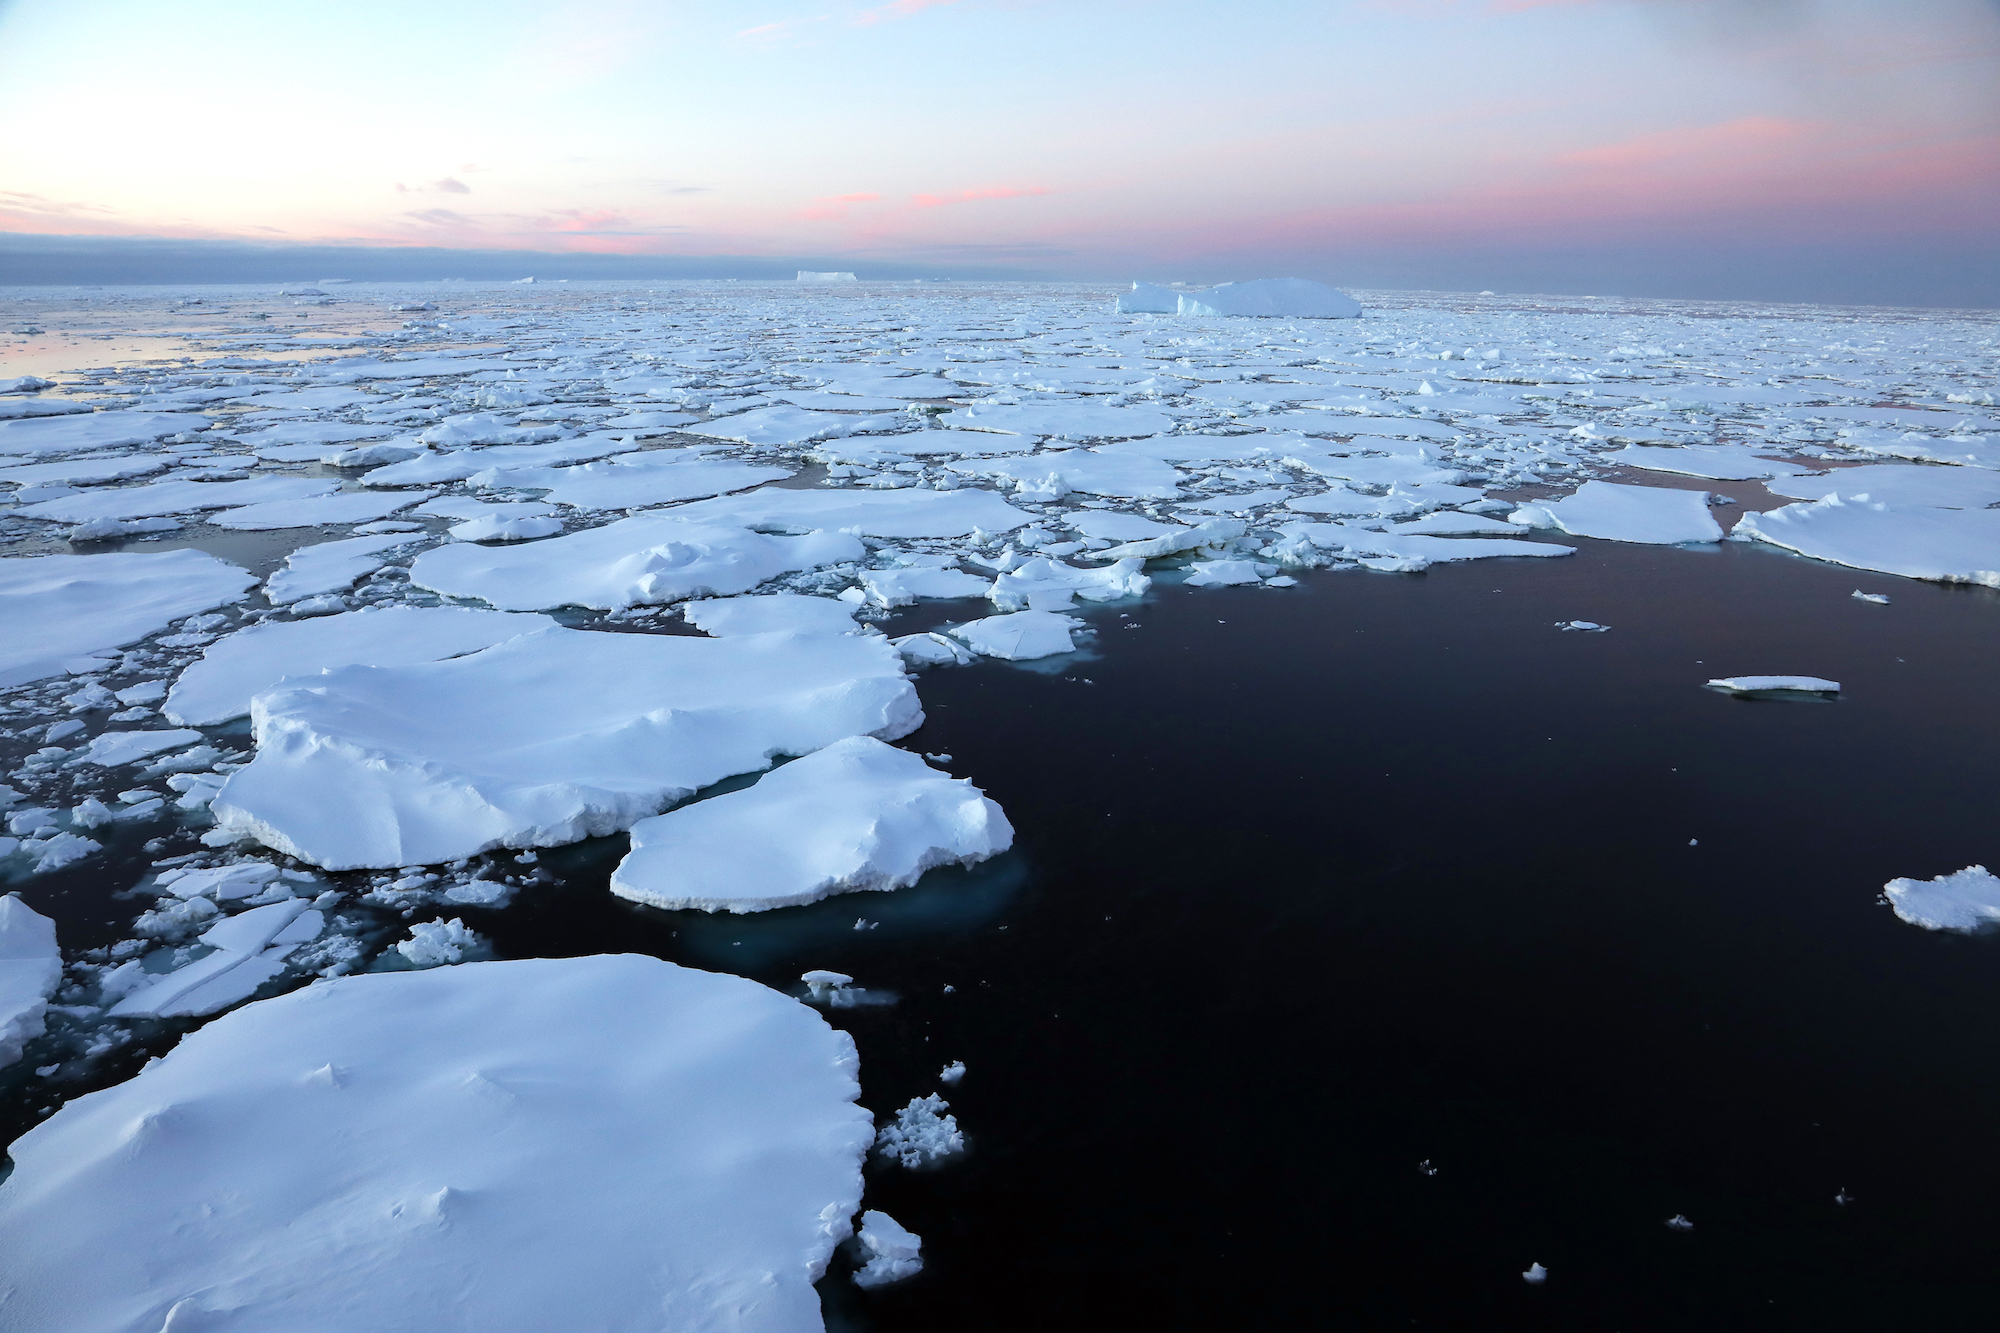 Drift sea ice is young flat ice floes formed from sea water at the sea surface that can move with current or winds.